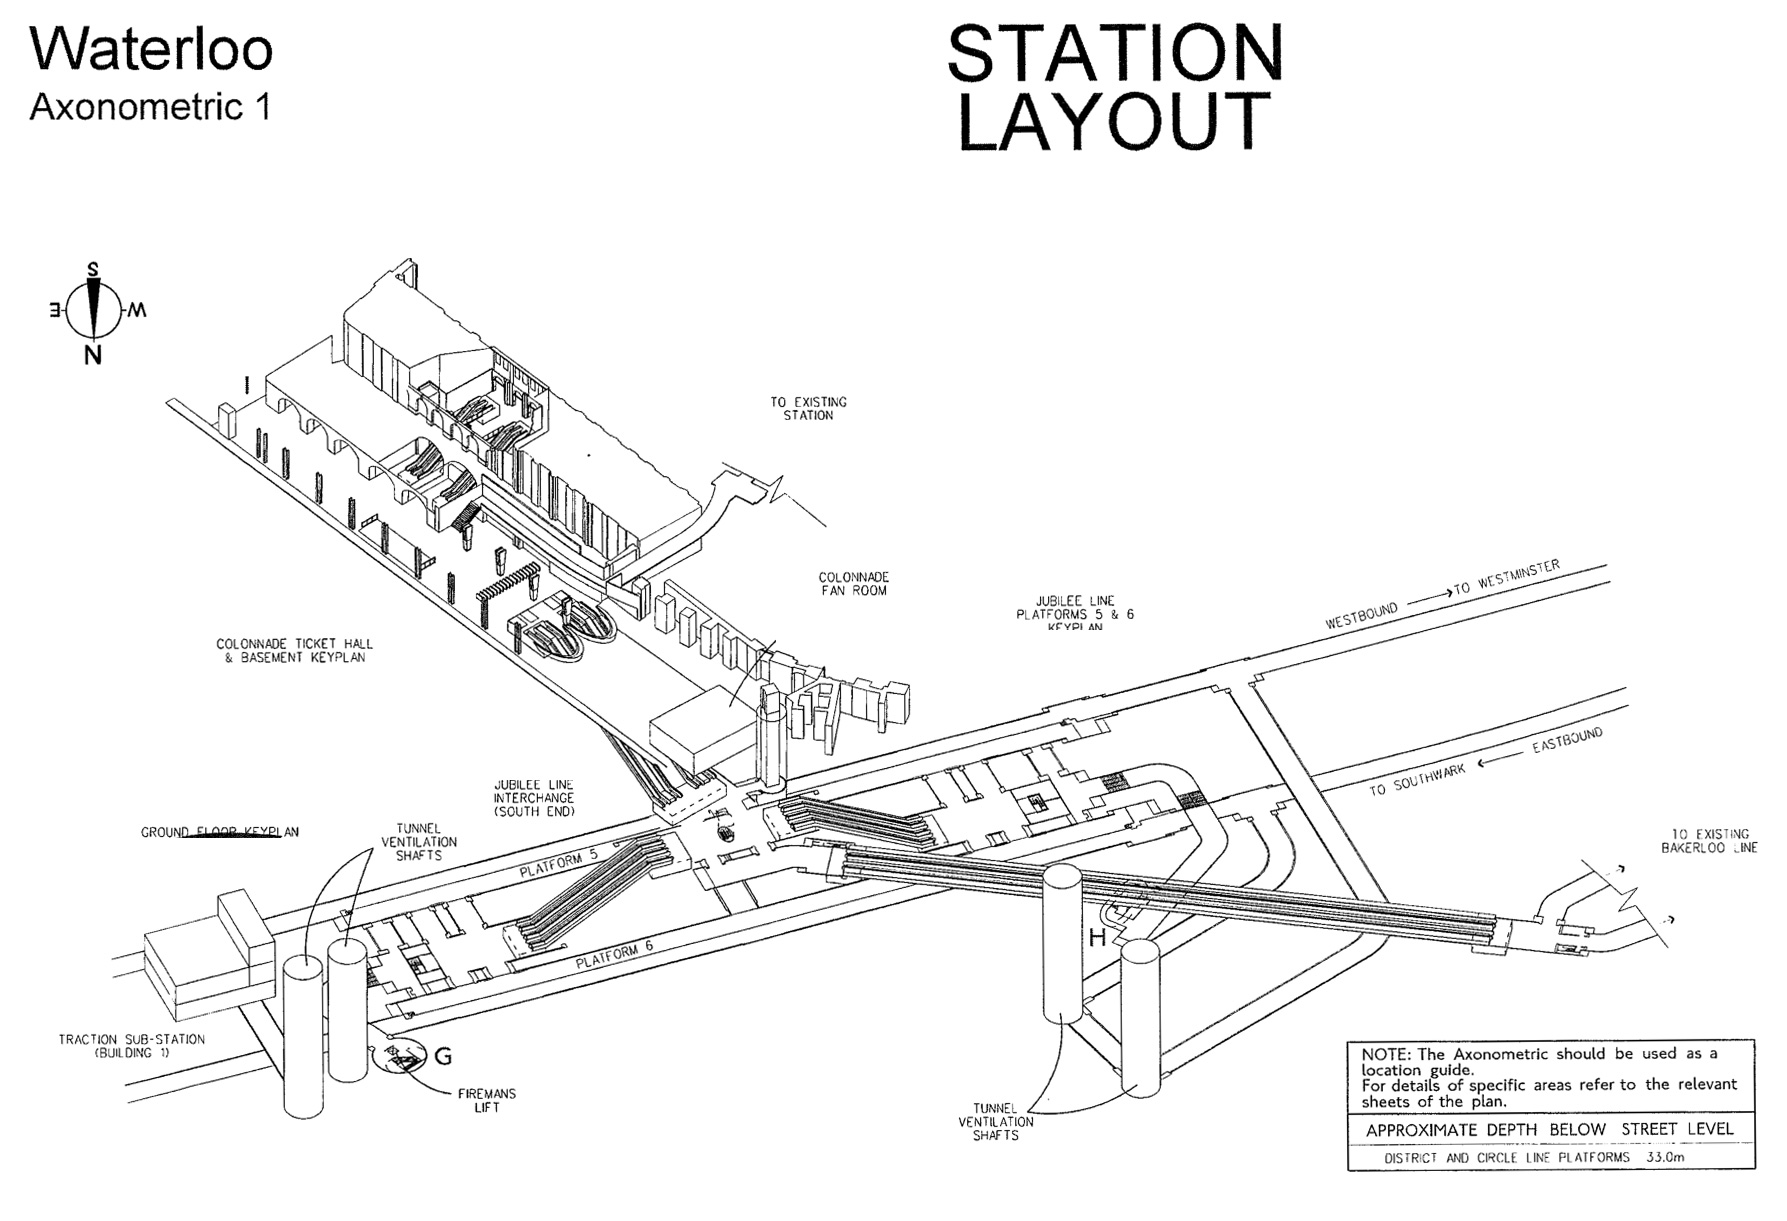 diagramme-3d-station-metro-londres-waterloo-image1-09